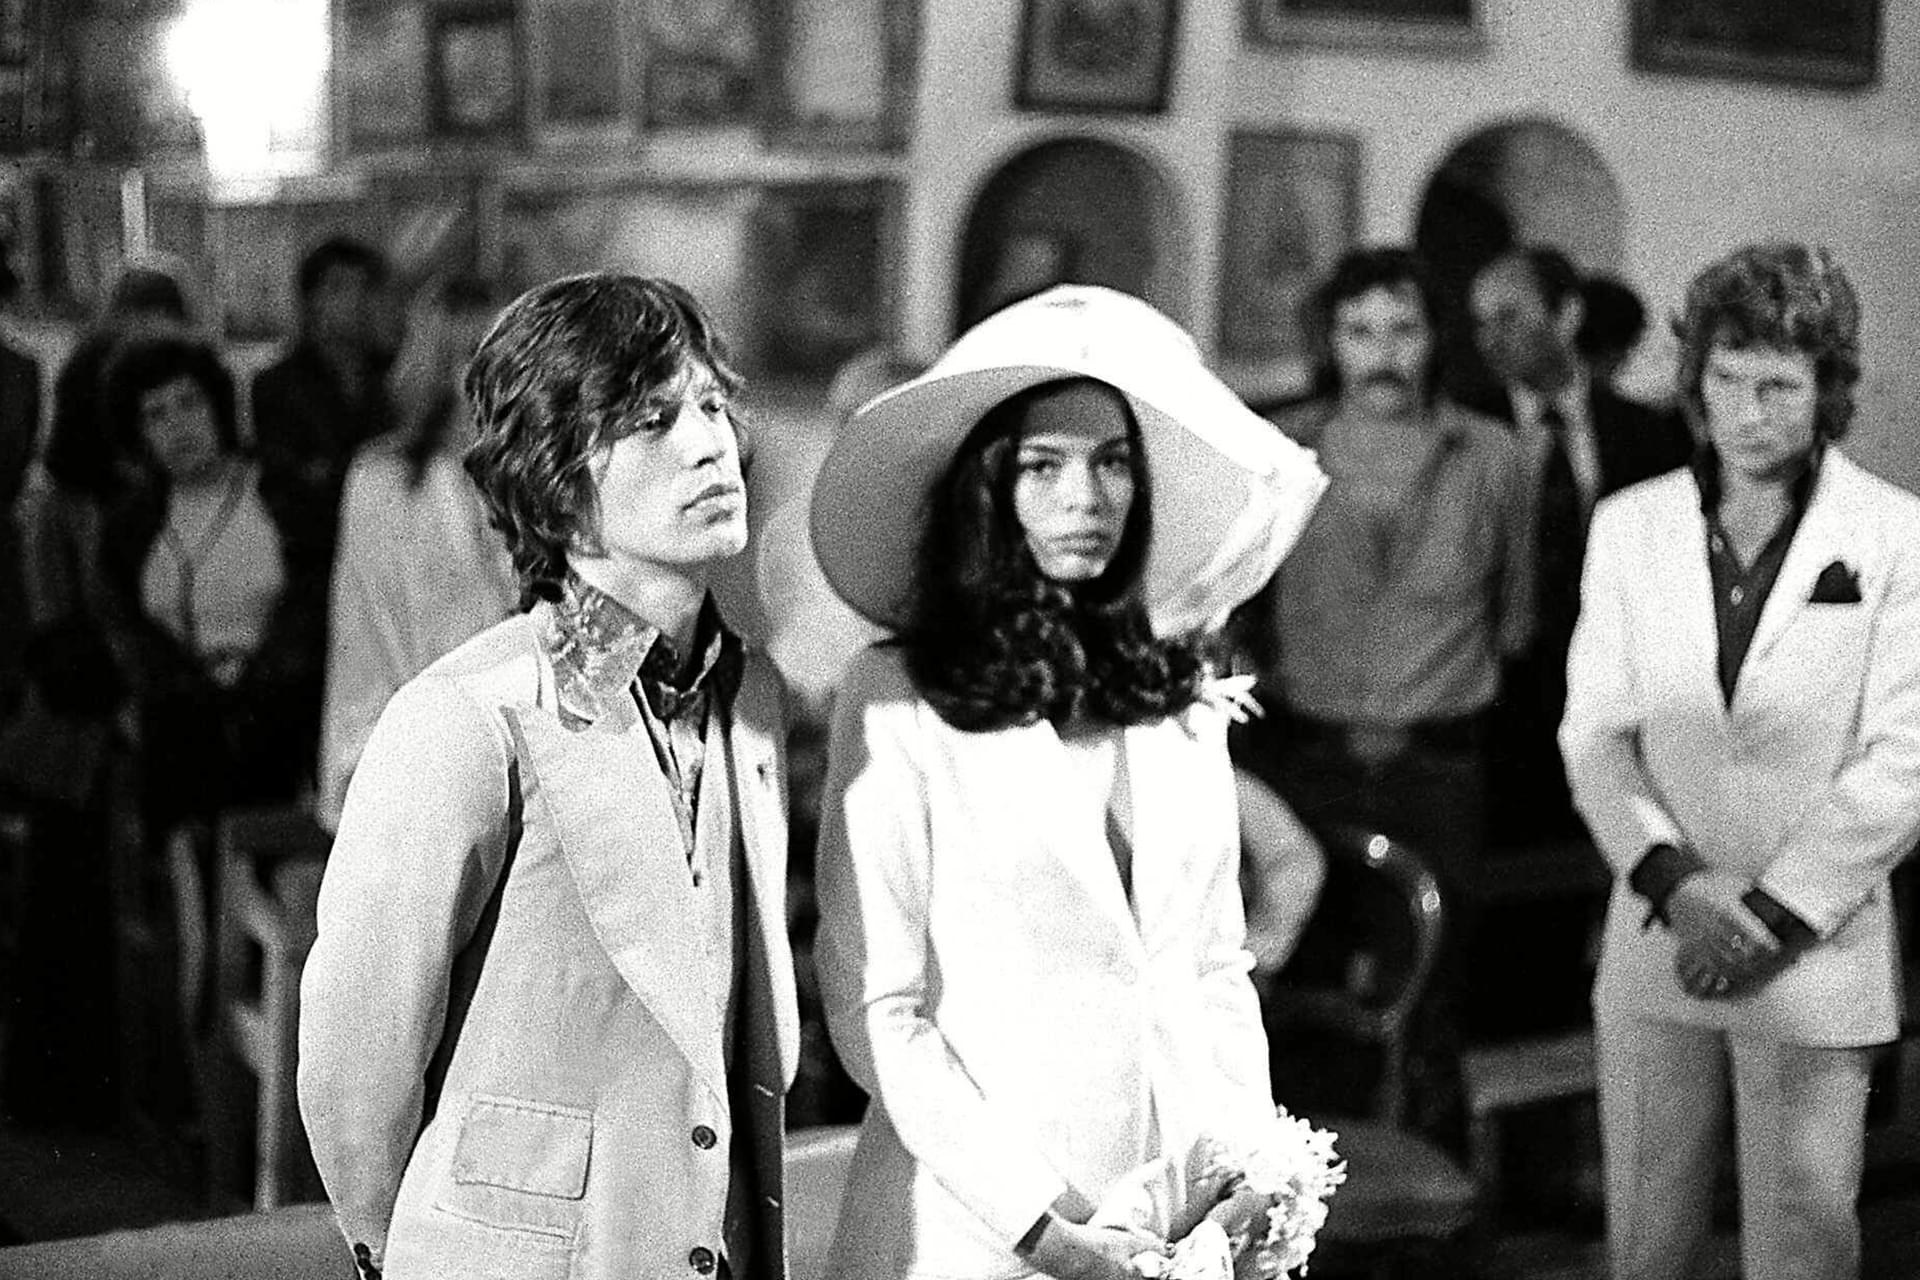 Bianca Jagger at her wedding to Mick Jagger May 12, 1971 in Saint-Tropez